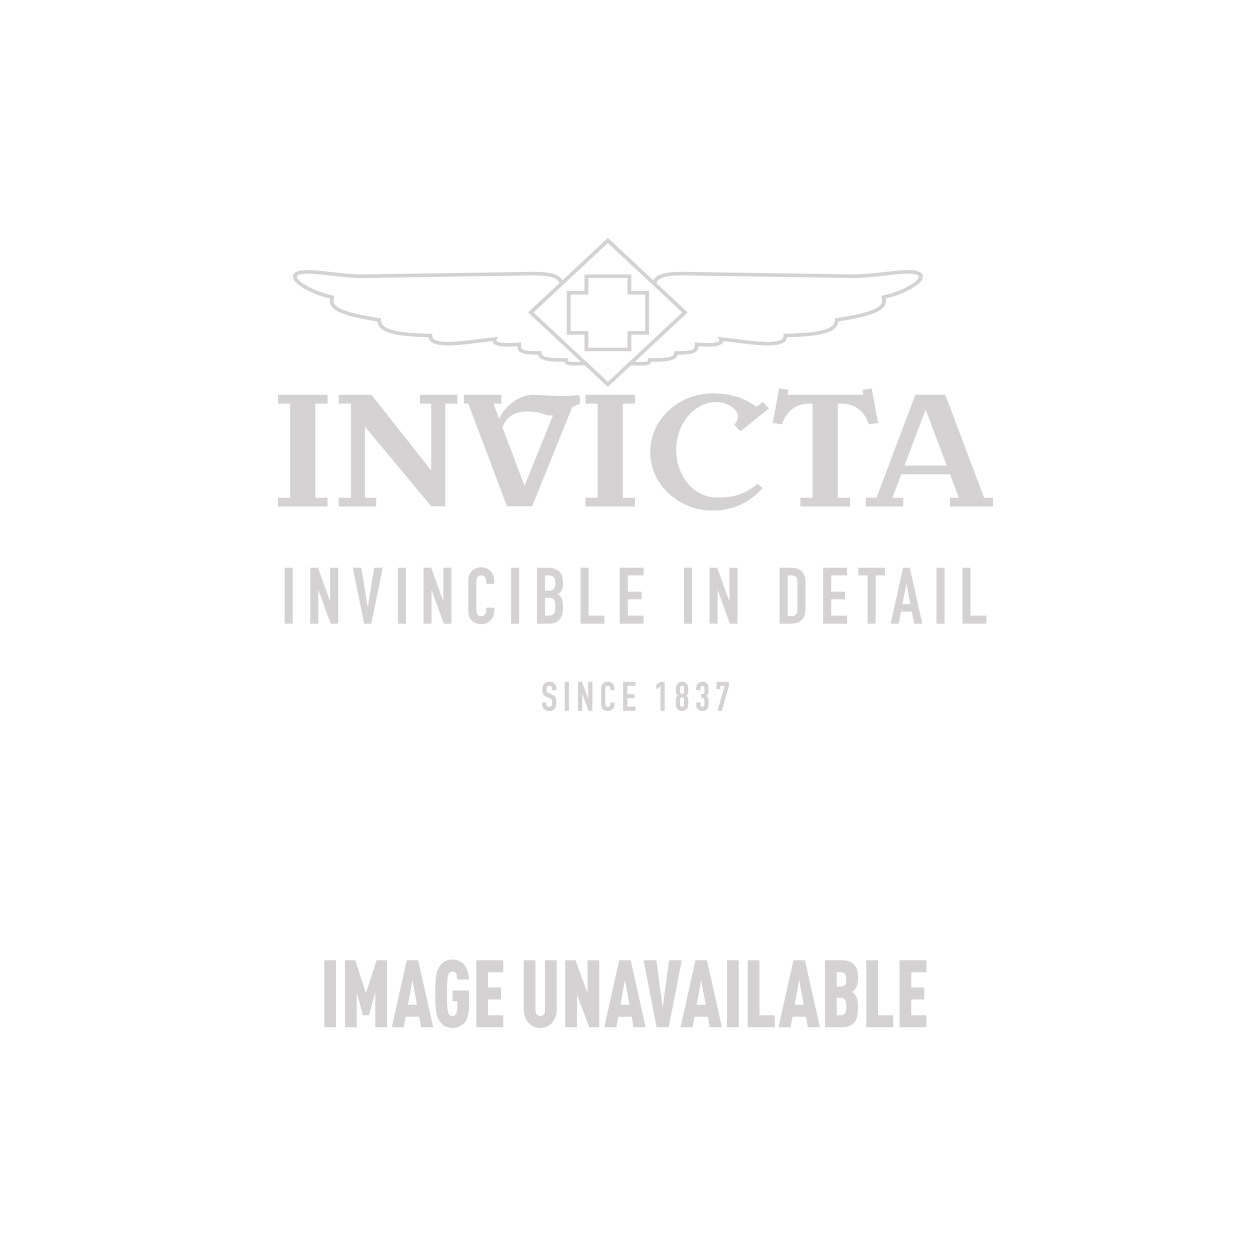 Invicta Specialty Swiss Movement Quartz Watch - Black case with Black tone Stainless Steel band - Model 13623